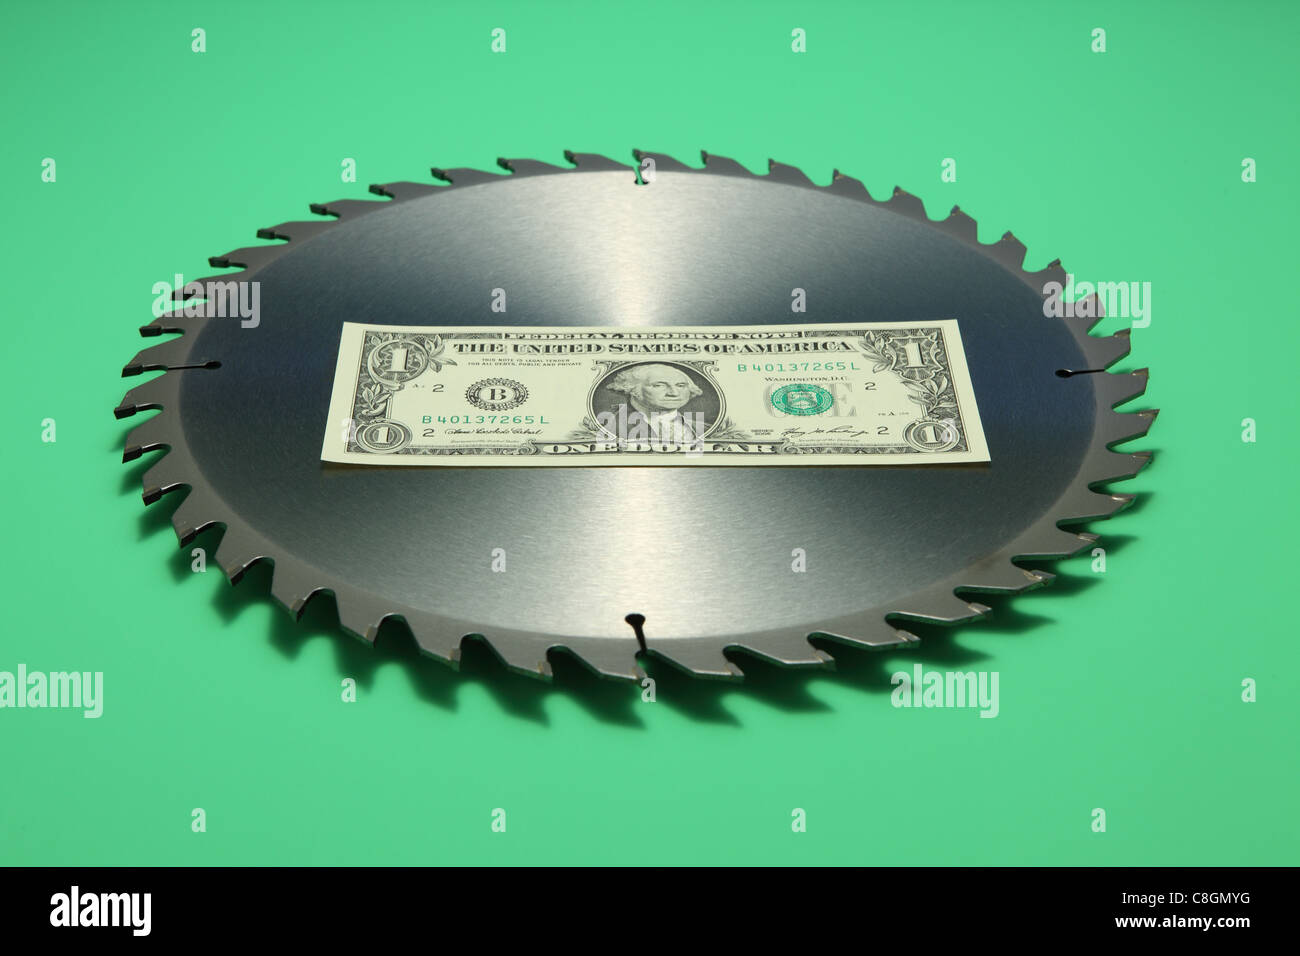 One US dollar banknote in the middle of a metal circular saw blade. Bright green background, banknote front facing - Stock Image